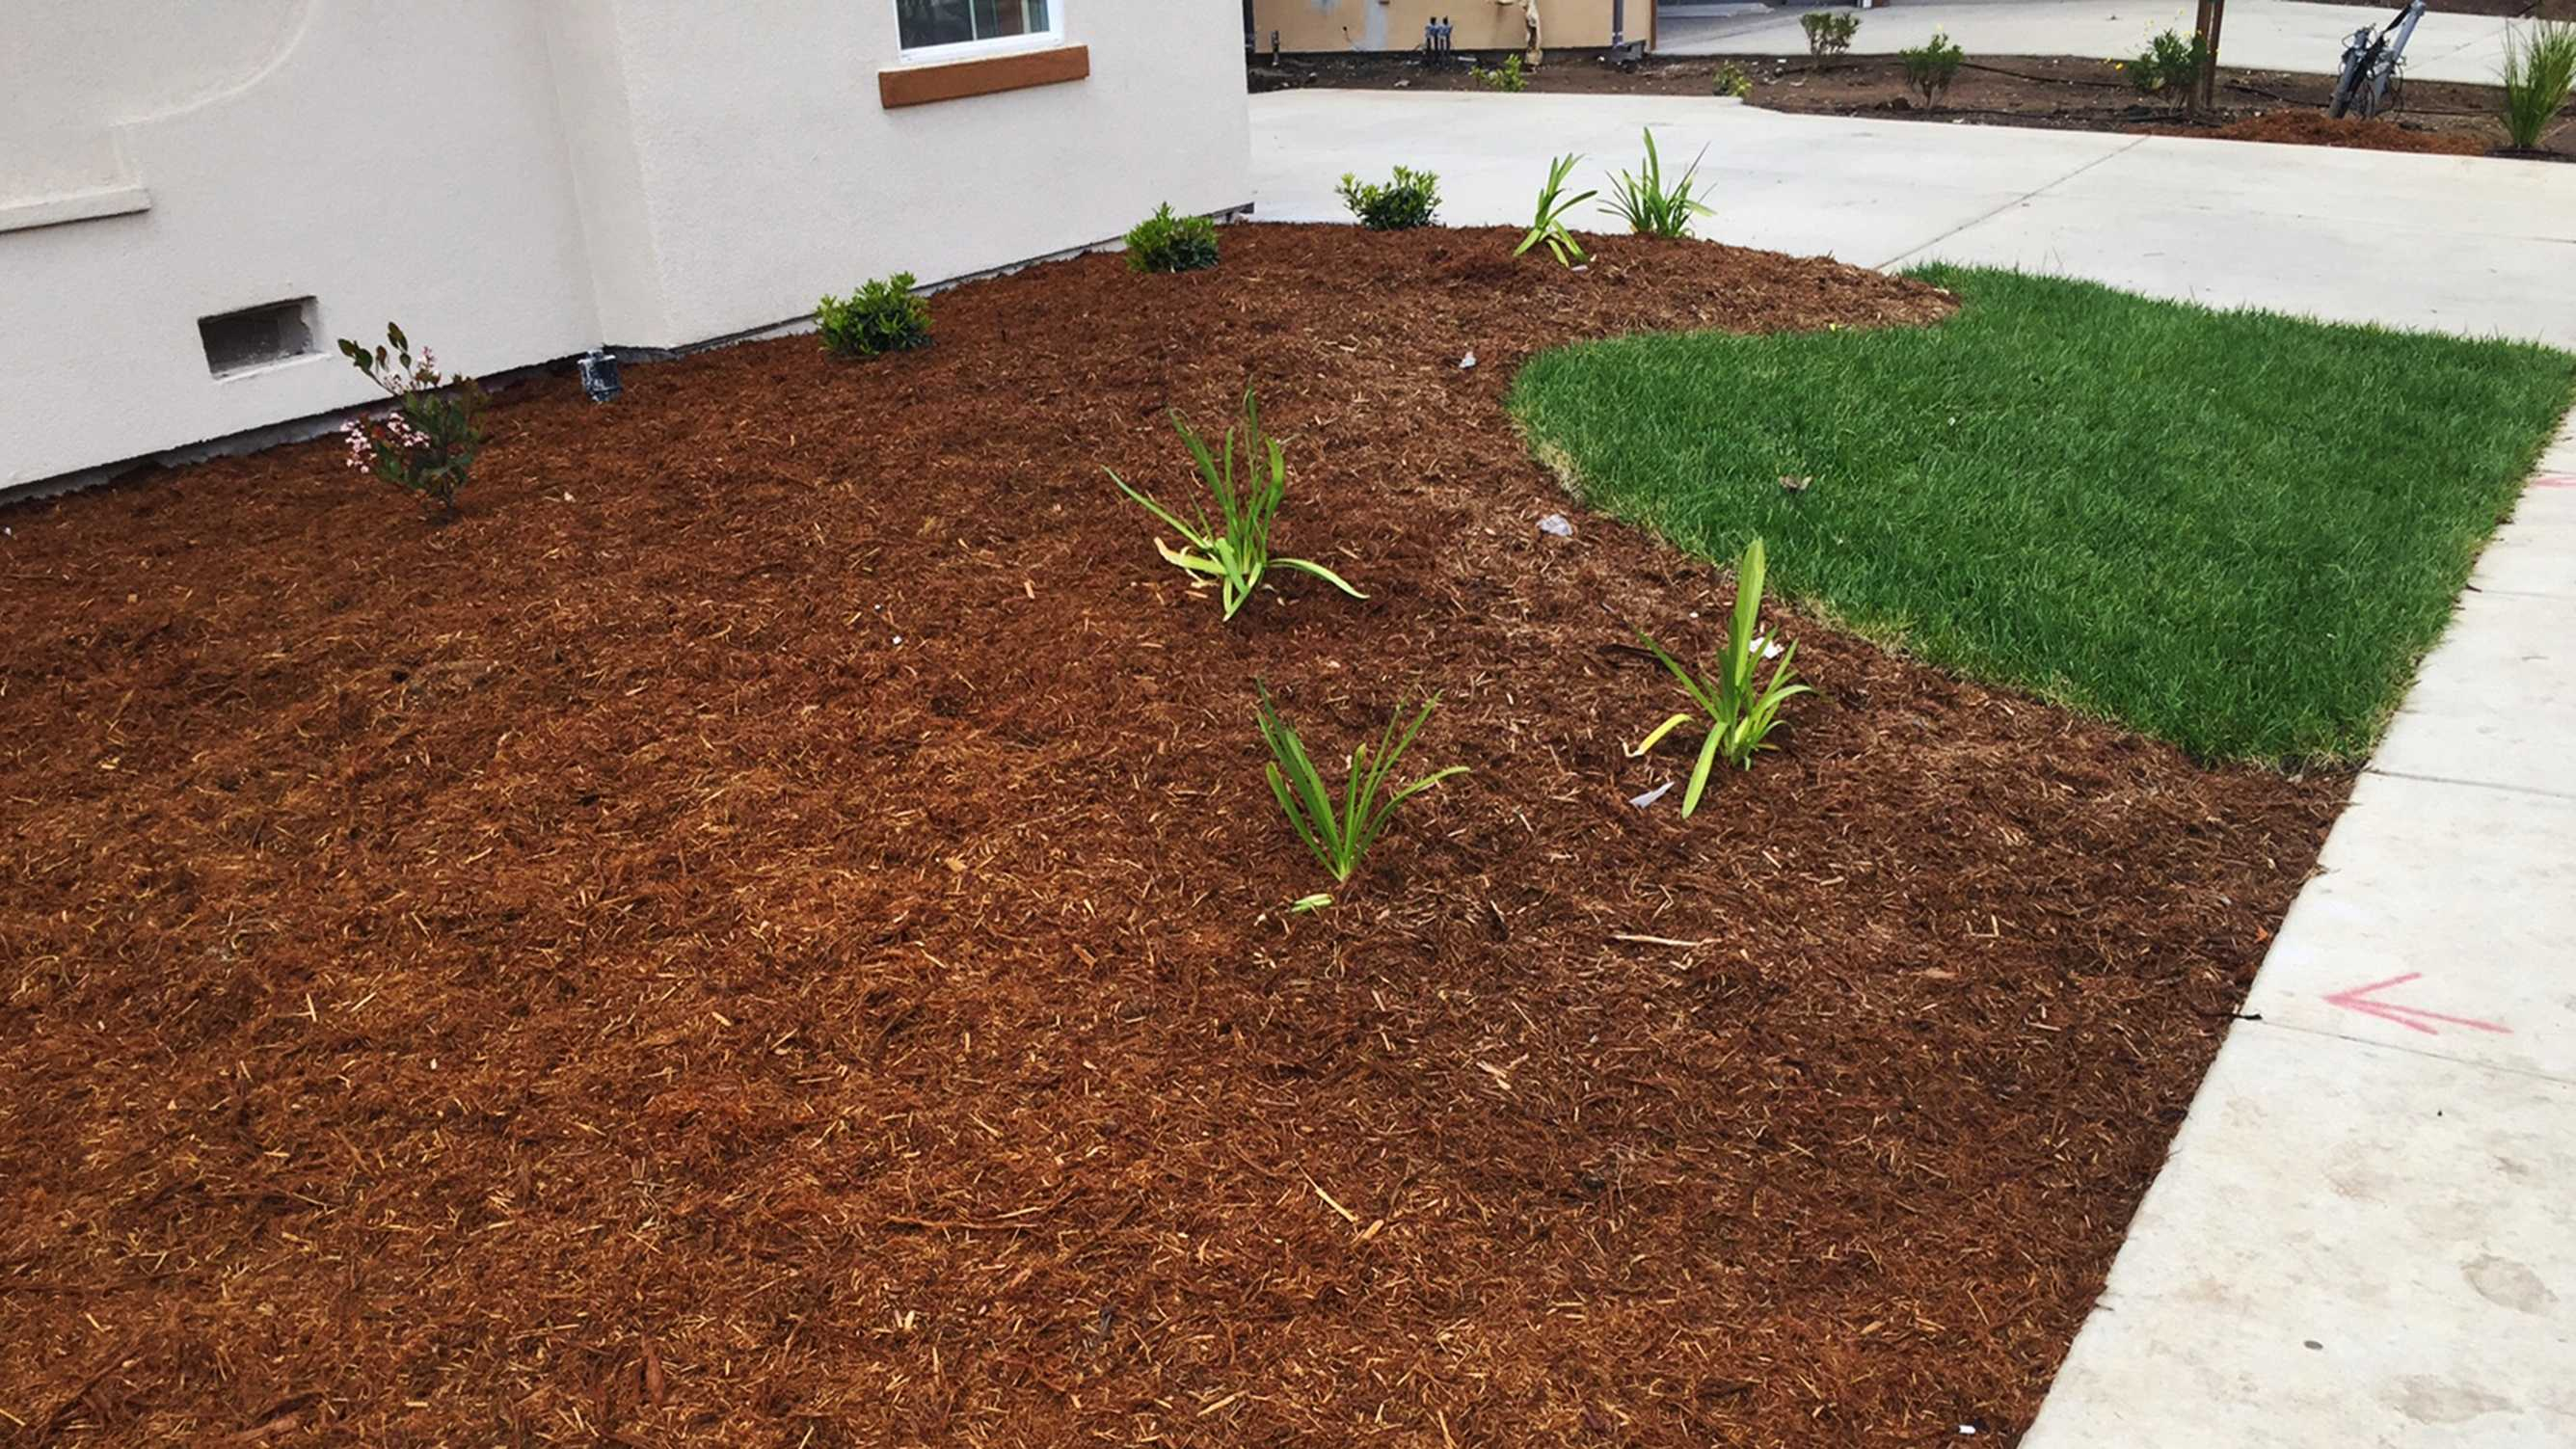 Little lawns are popular during California's drought.